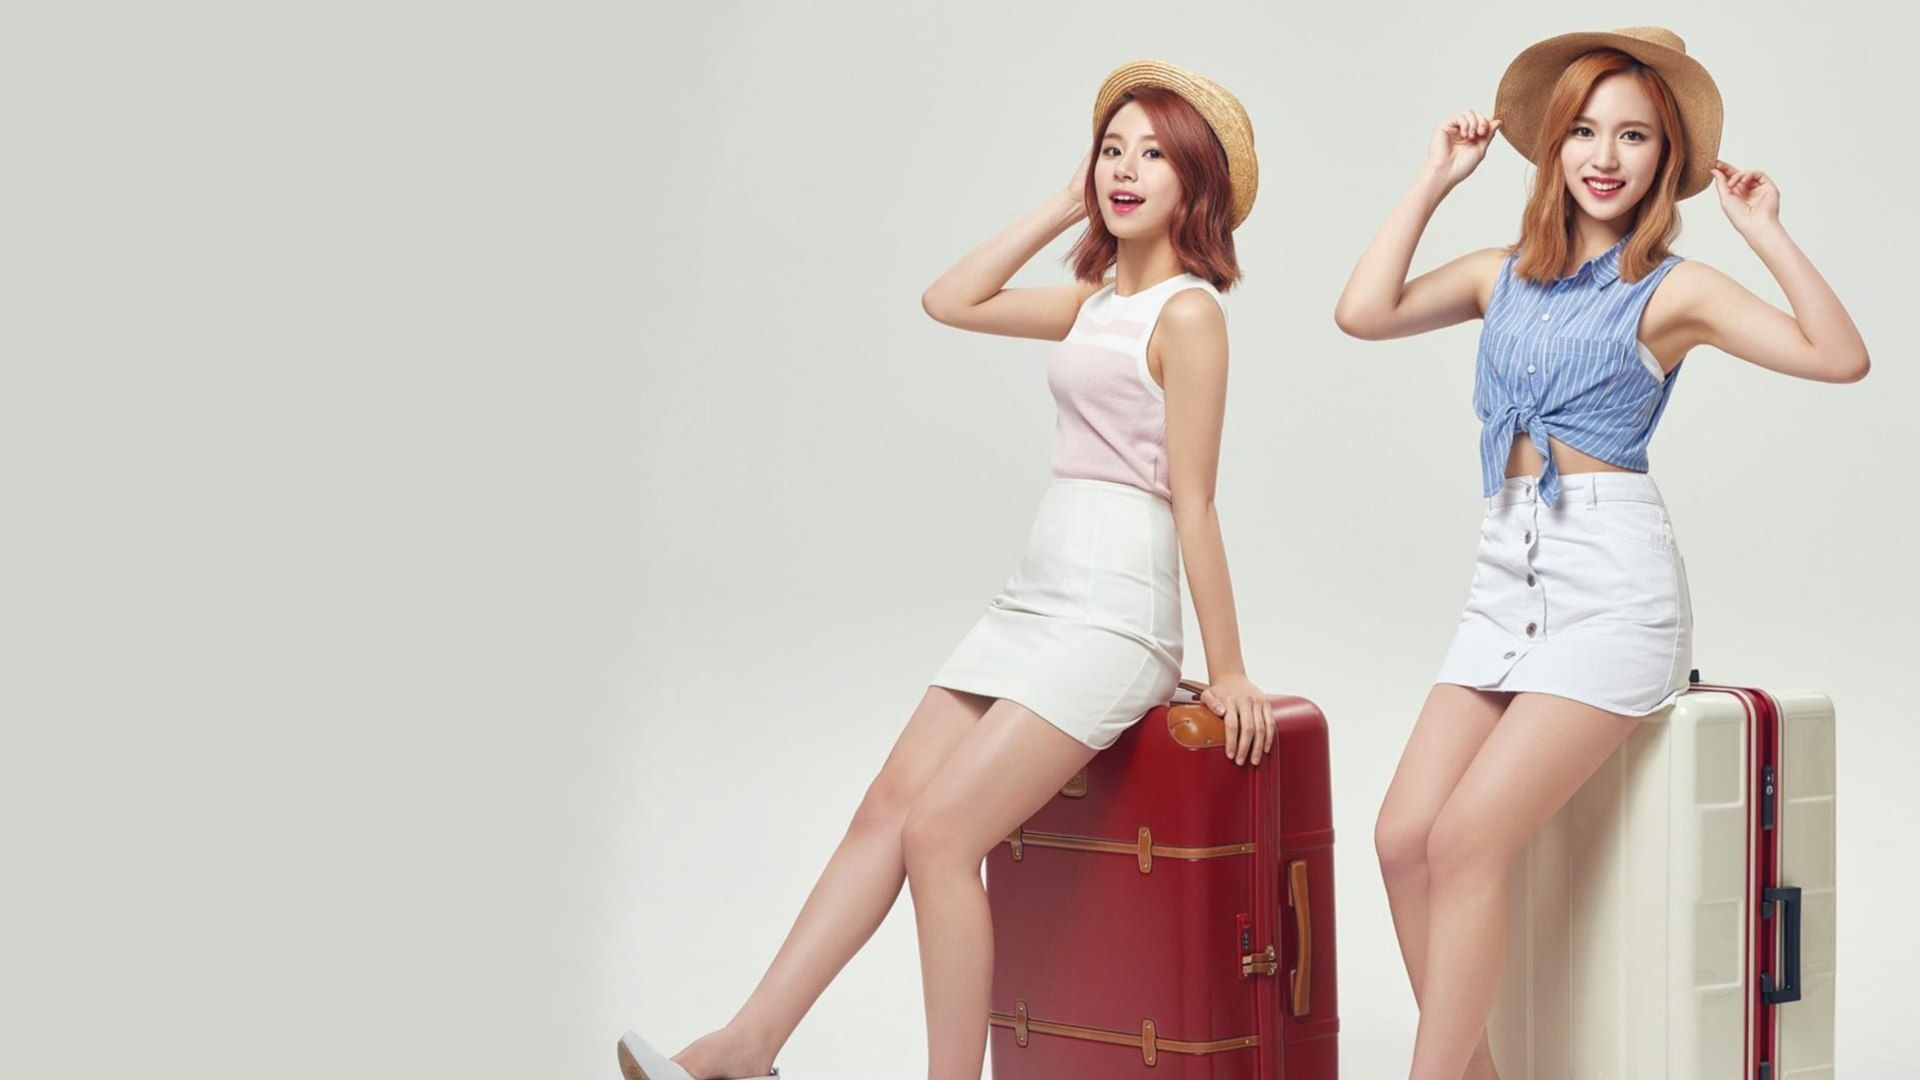 Chaeyoung and Mina TWICE K-Pop Girls... Wallpaper #37717